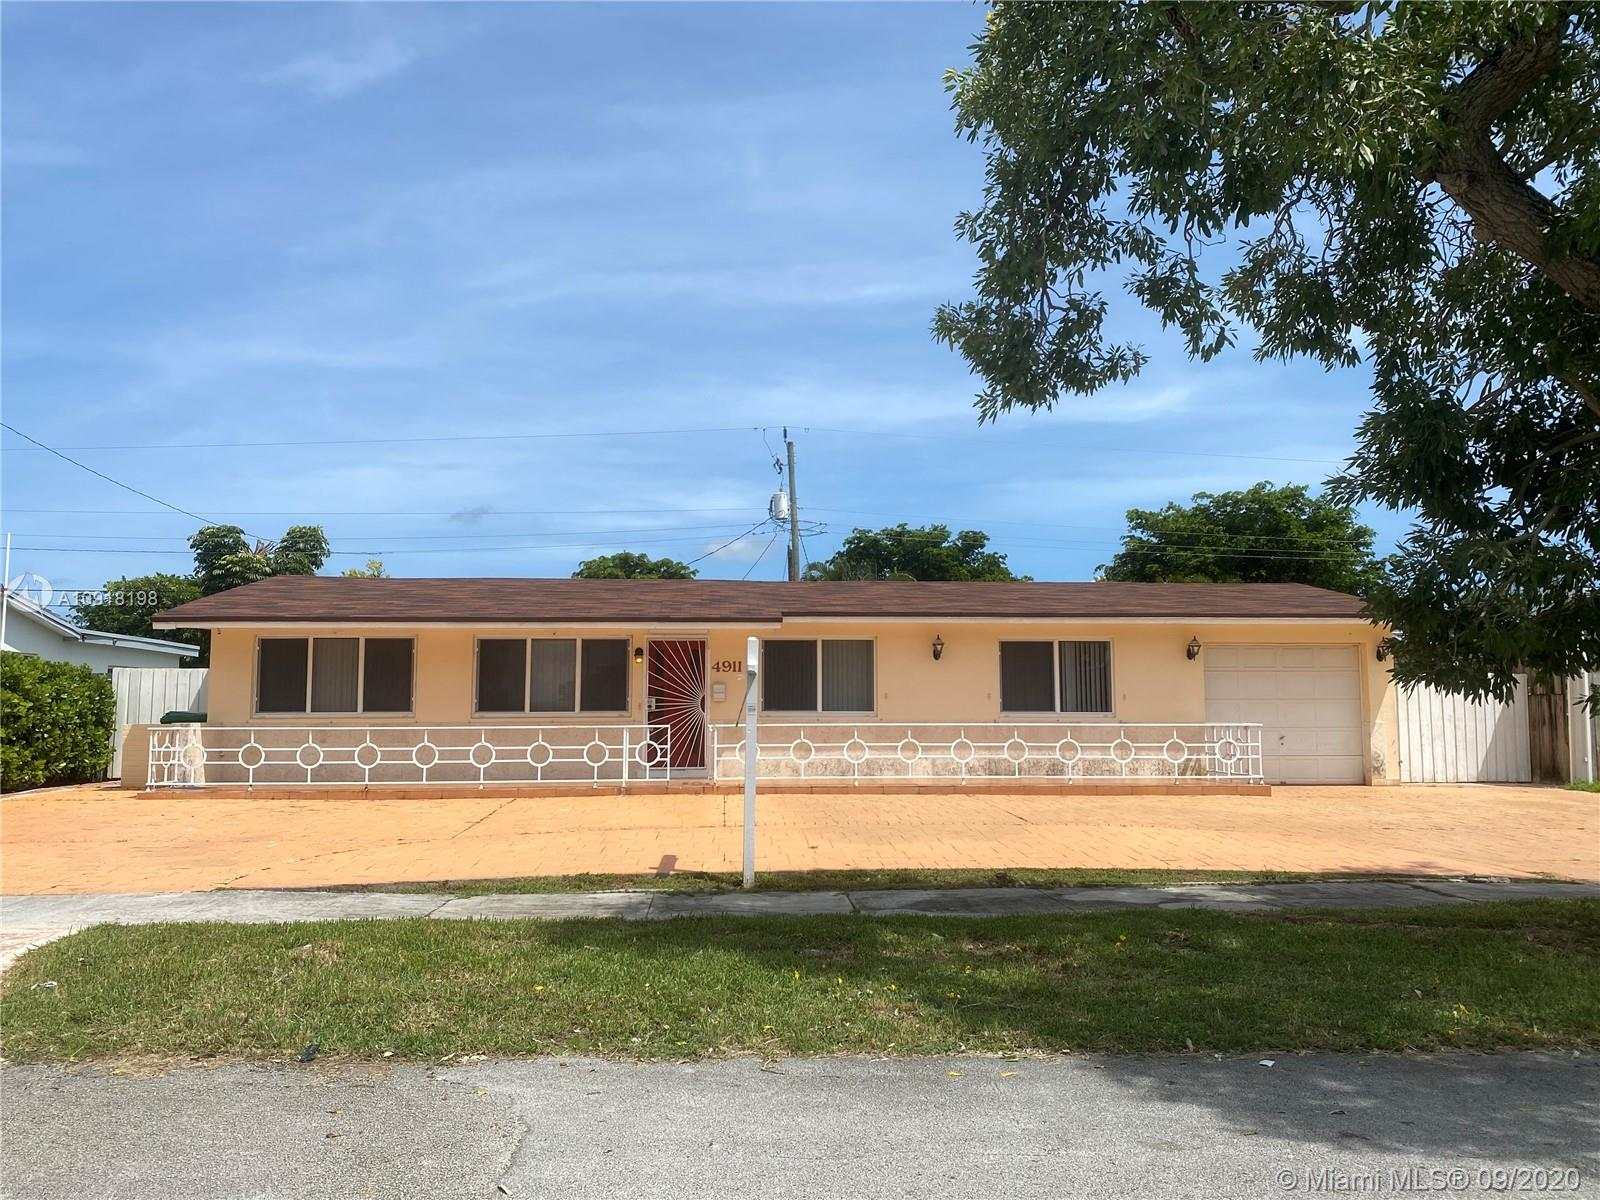 3 bed 2 bath RENTAL in the heart of Miami. Clean and spacious. Large circular driveway. Very large living room and family room with separate dining room. Fully tiled, very bright. No pool. Fully paved backyard. Garage and ample side parking. NO HOA. Room for Boat, RV.